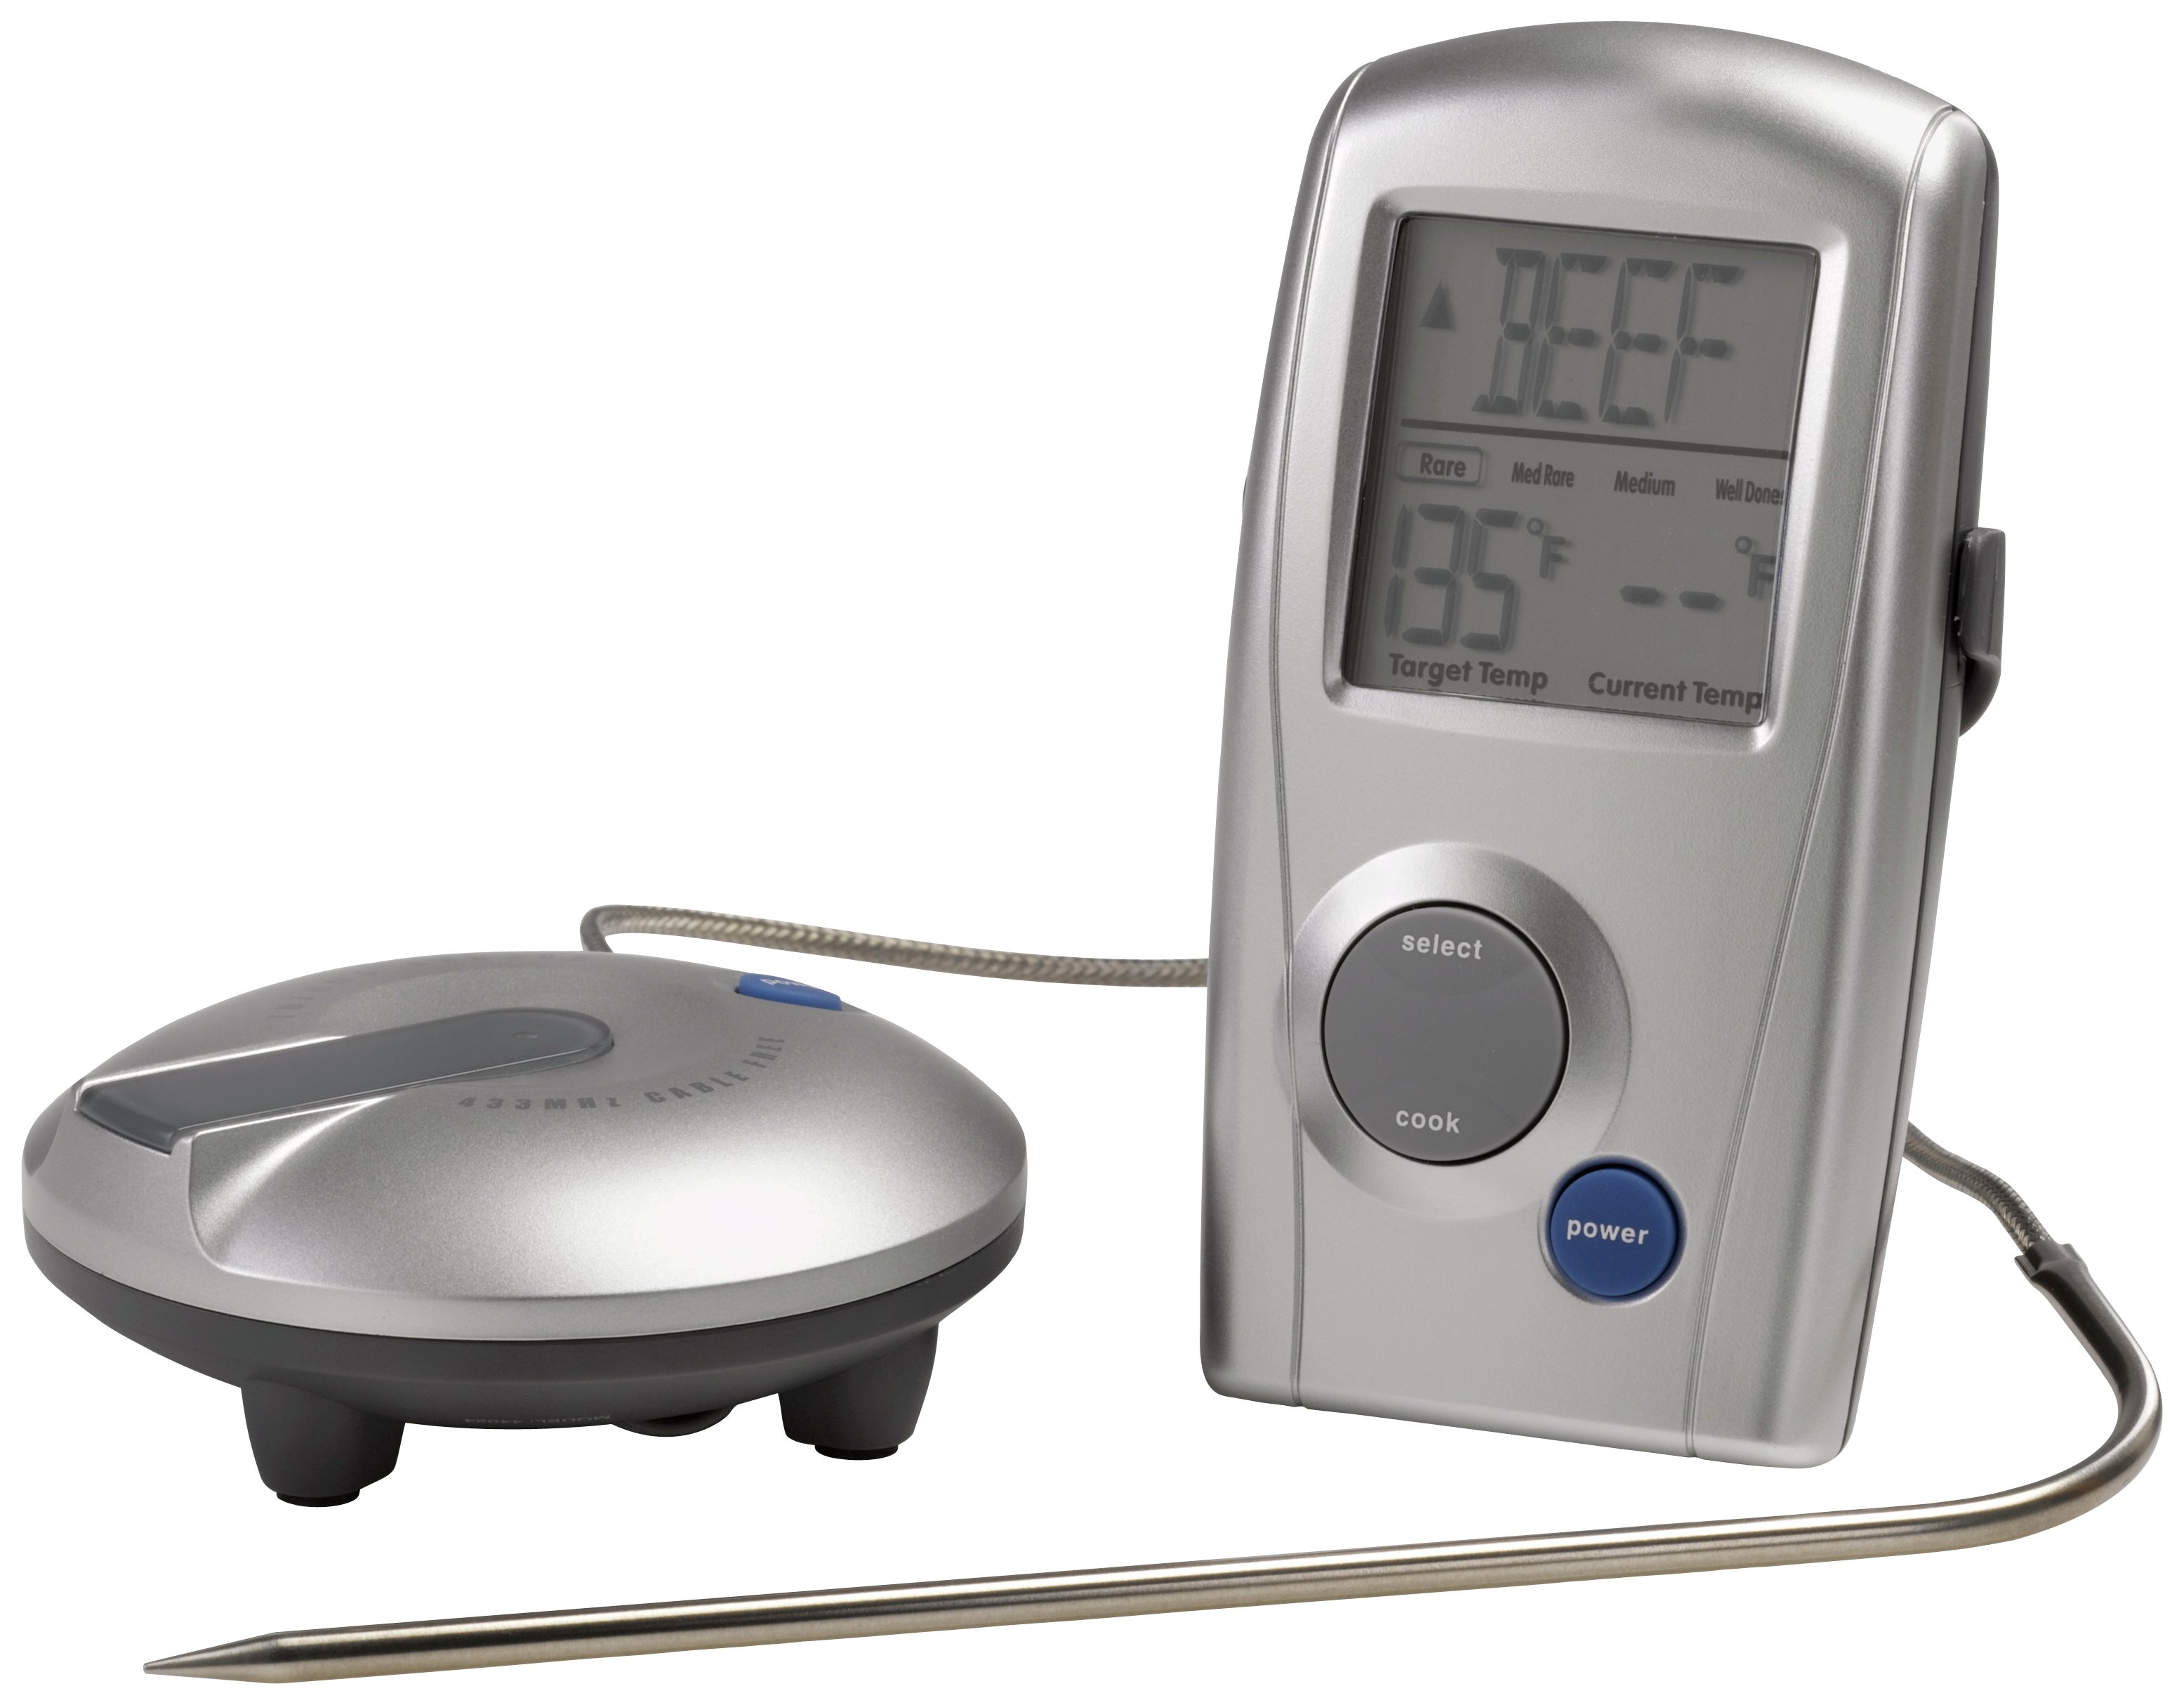 Char-Broil - Wireless Digital Thermometer lowest price